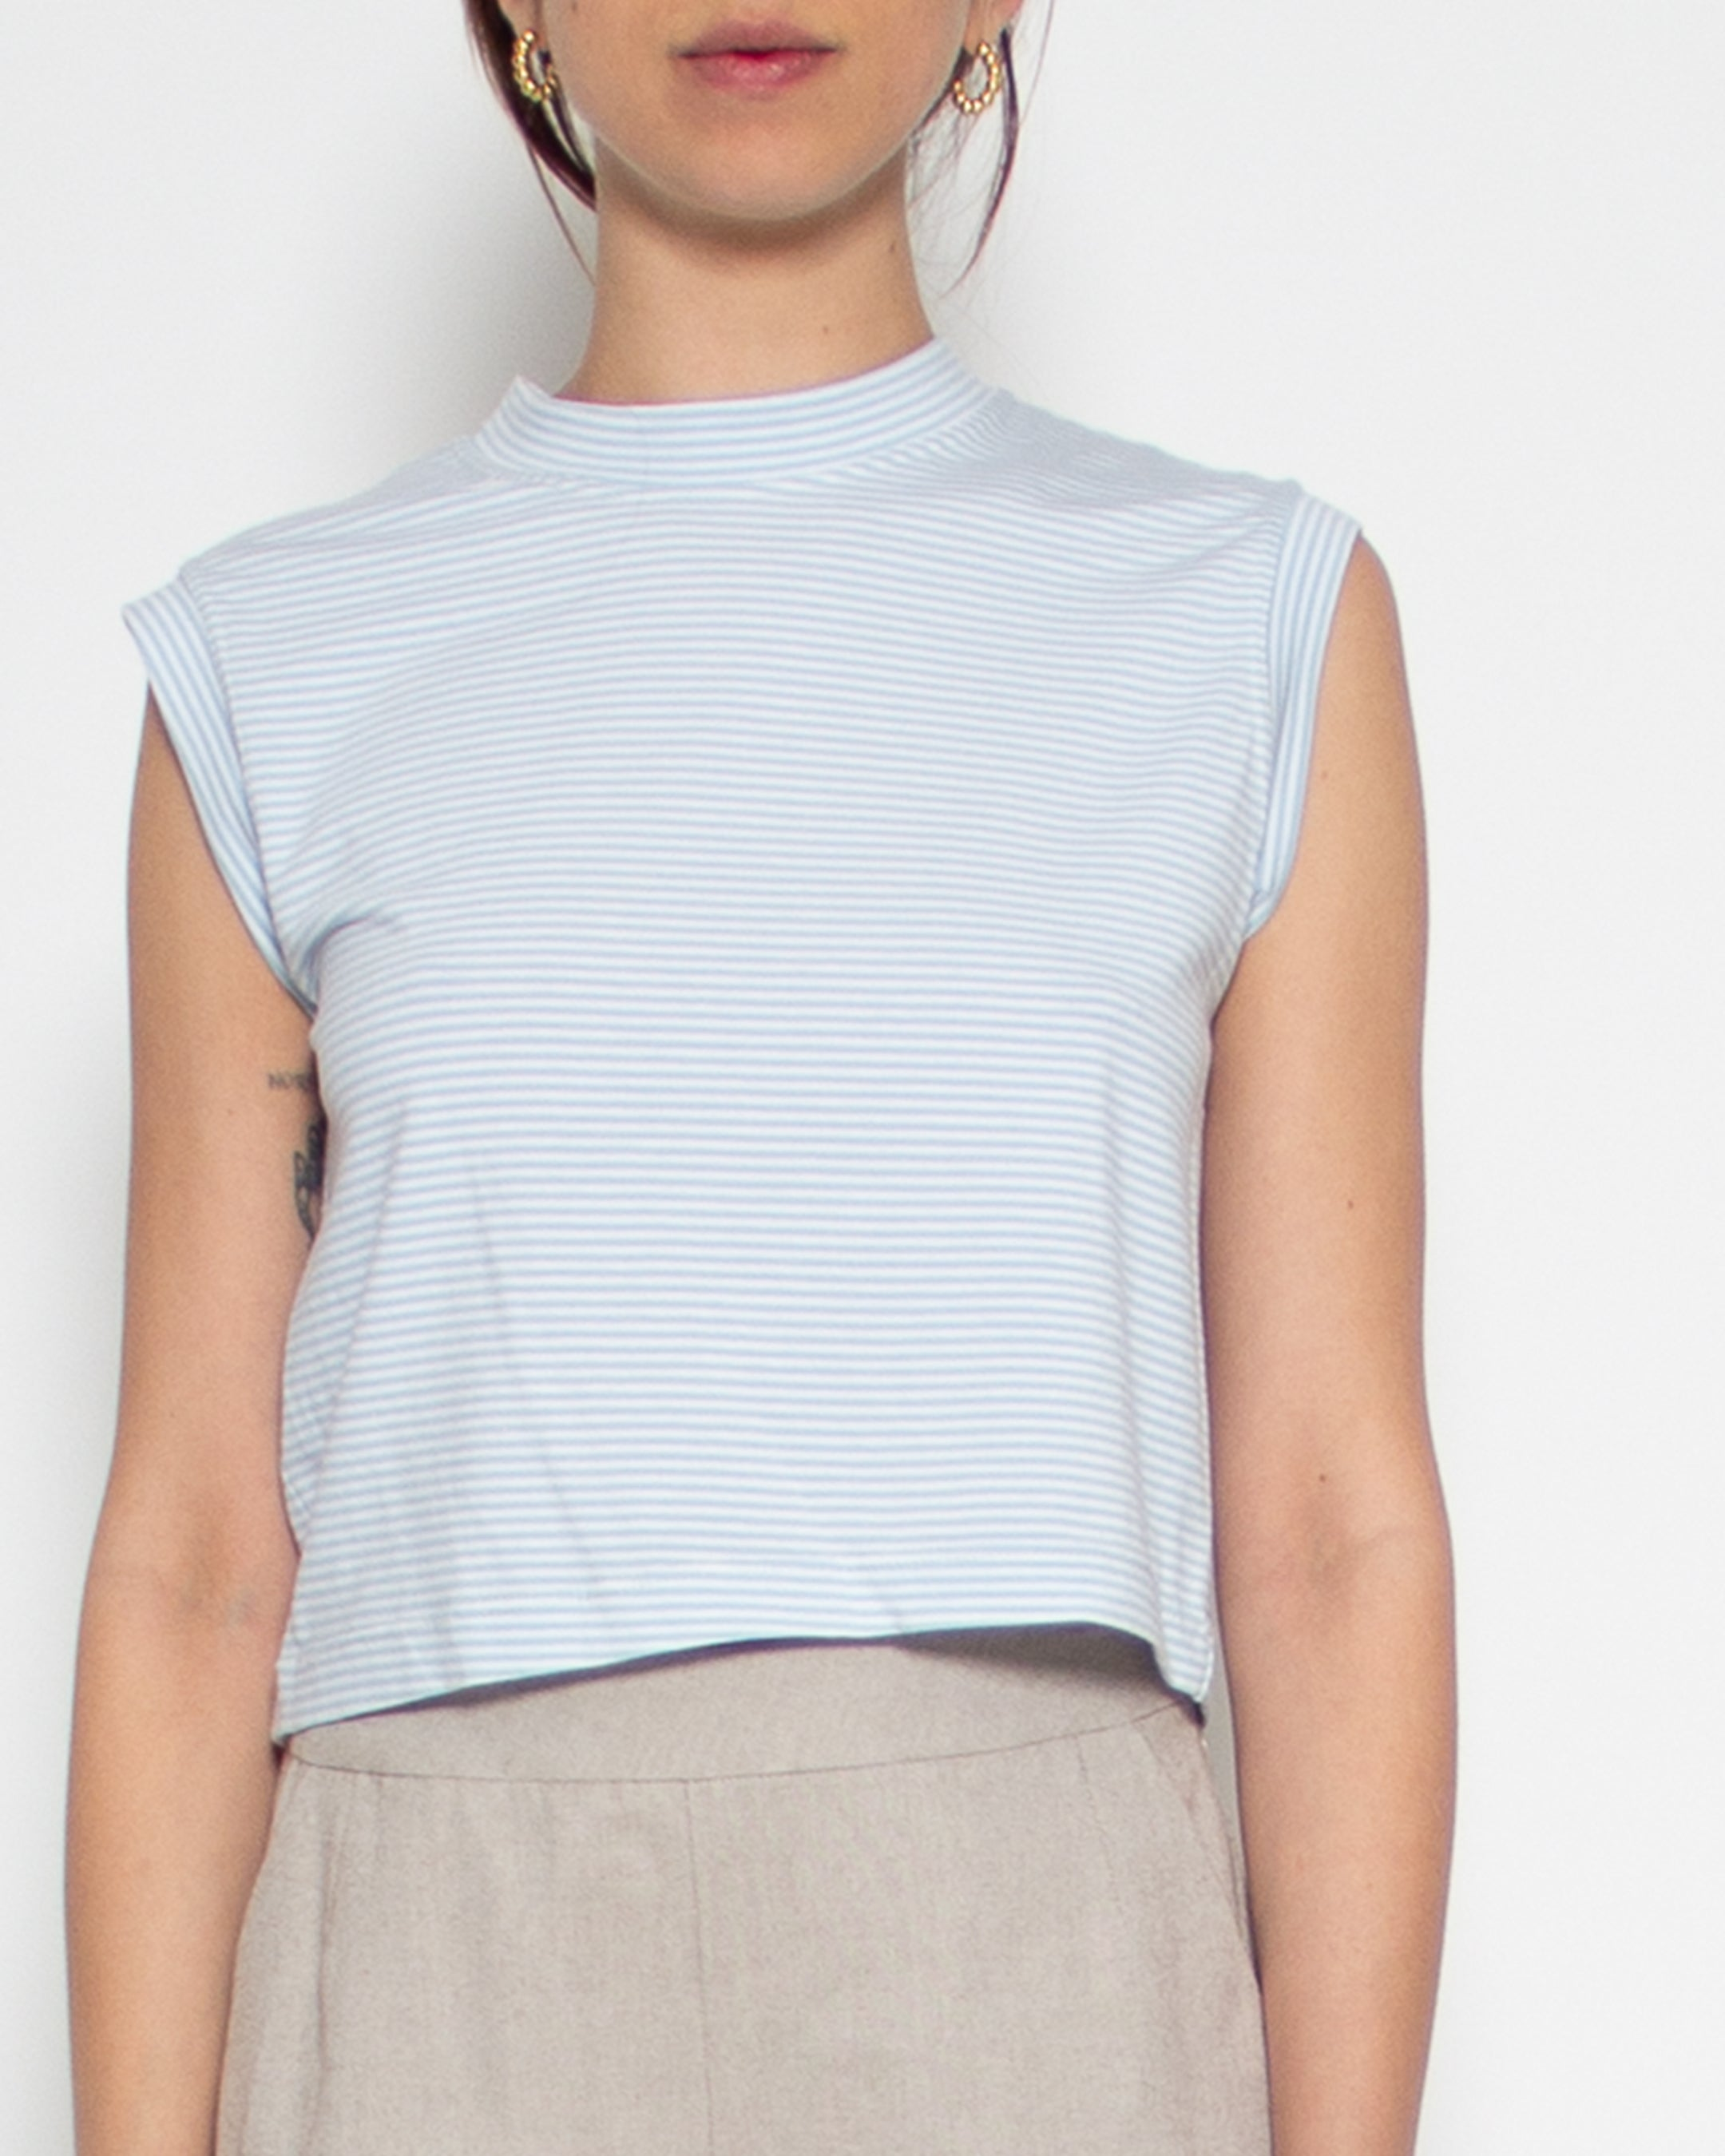 Minerva Tank in Sky Stripe Bamboo-Organic Cotton